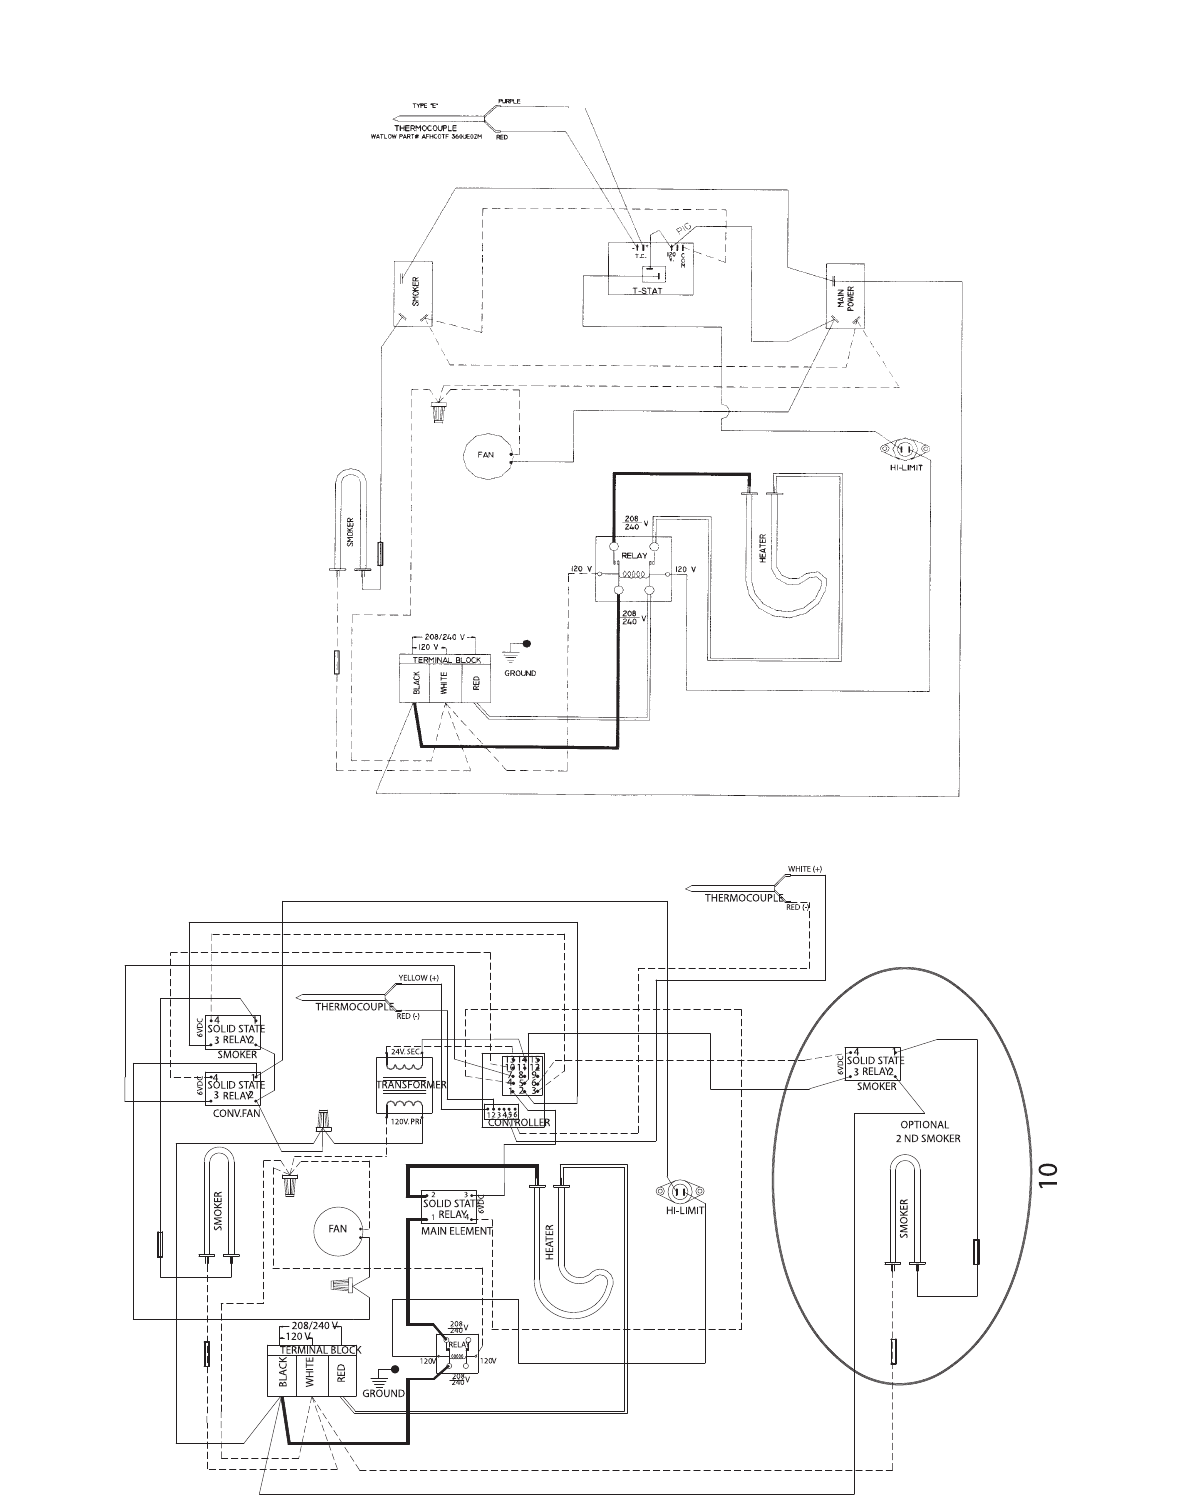 DIAGRAM] Southern Pride Smoker Wiring Diagram FULL Version HD Quality Wiring  Diagram - WIRINGJ11.CONCESSIONARIABELOGISENIGALLIA.ITconcessionariabelogisenigallia.it